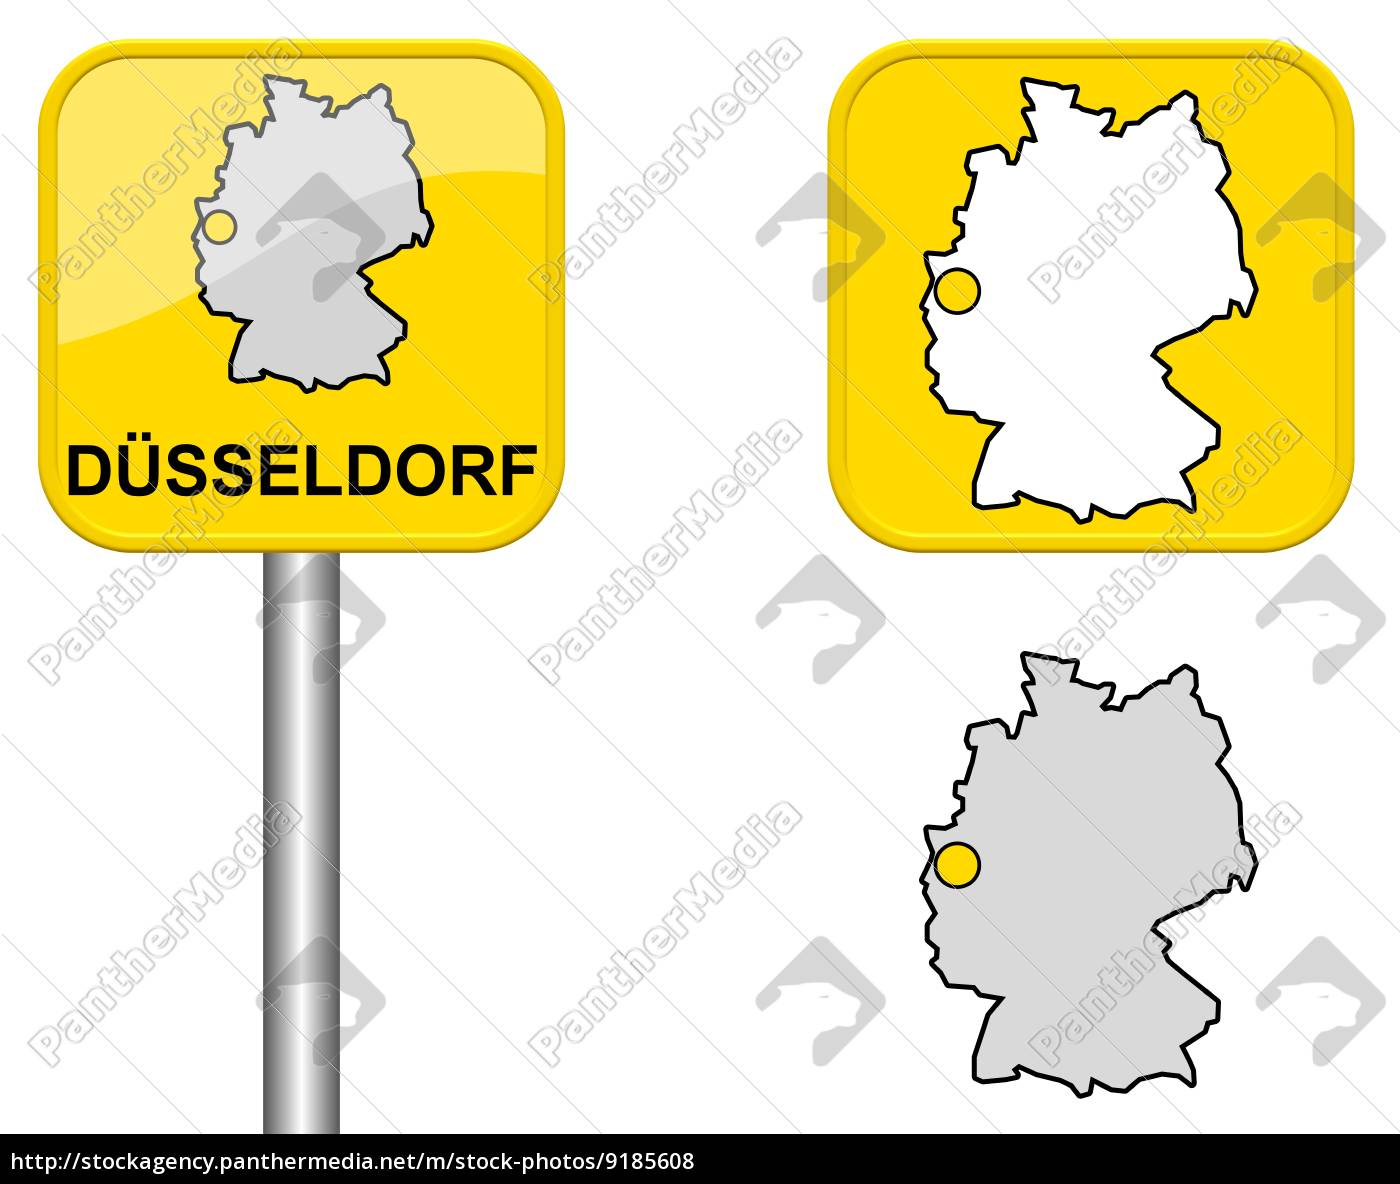 Map Of Dusseldorf Germany For Tourist on map of sydney australia, map of rail dusseldorf to cologne germany, map of wittlich germany and dusseldorf, map of krefeld, map of europe, map of germany dusseldorf germany,